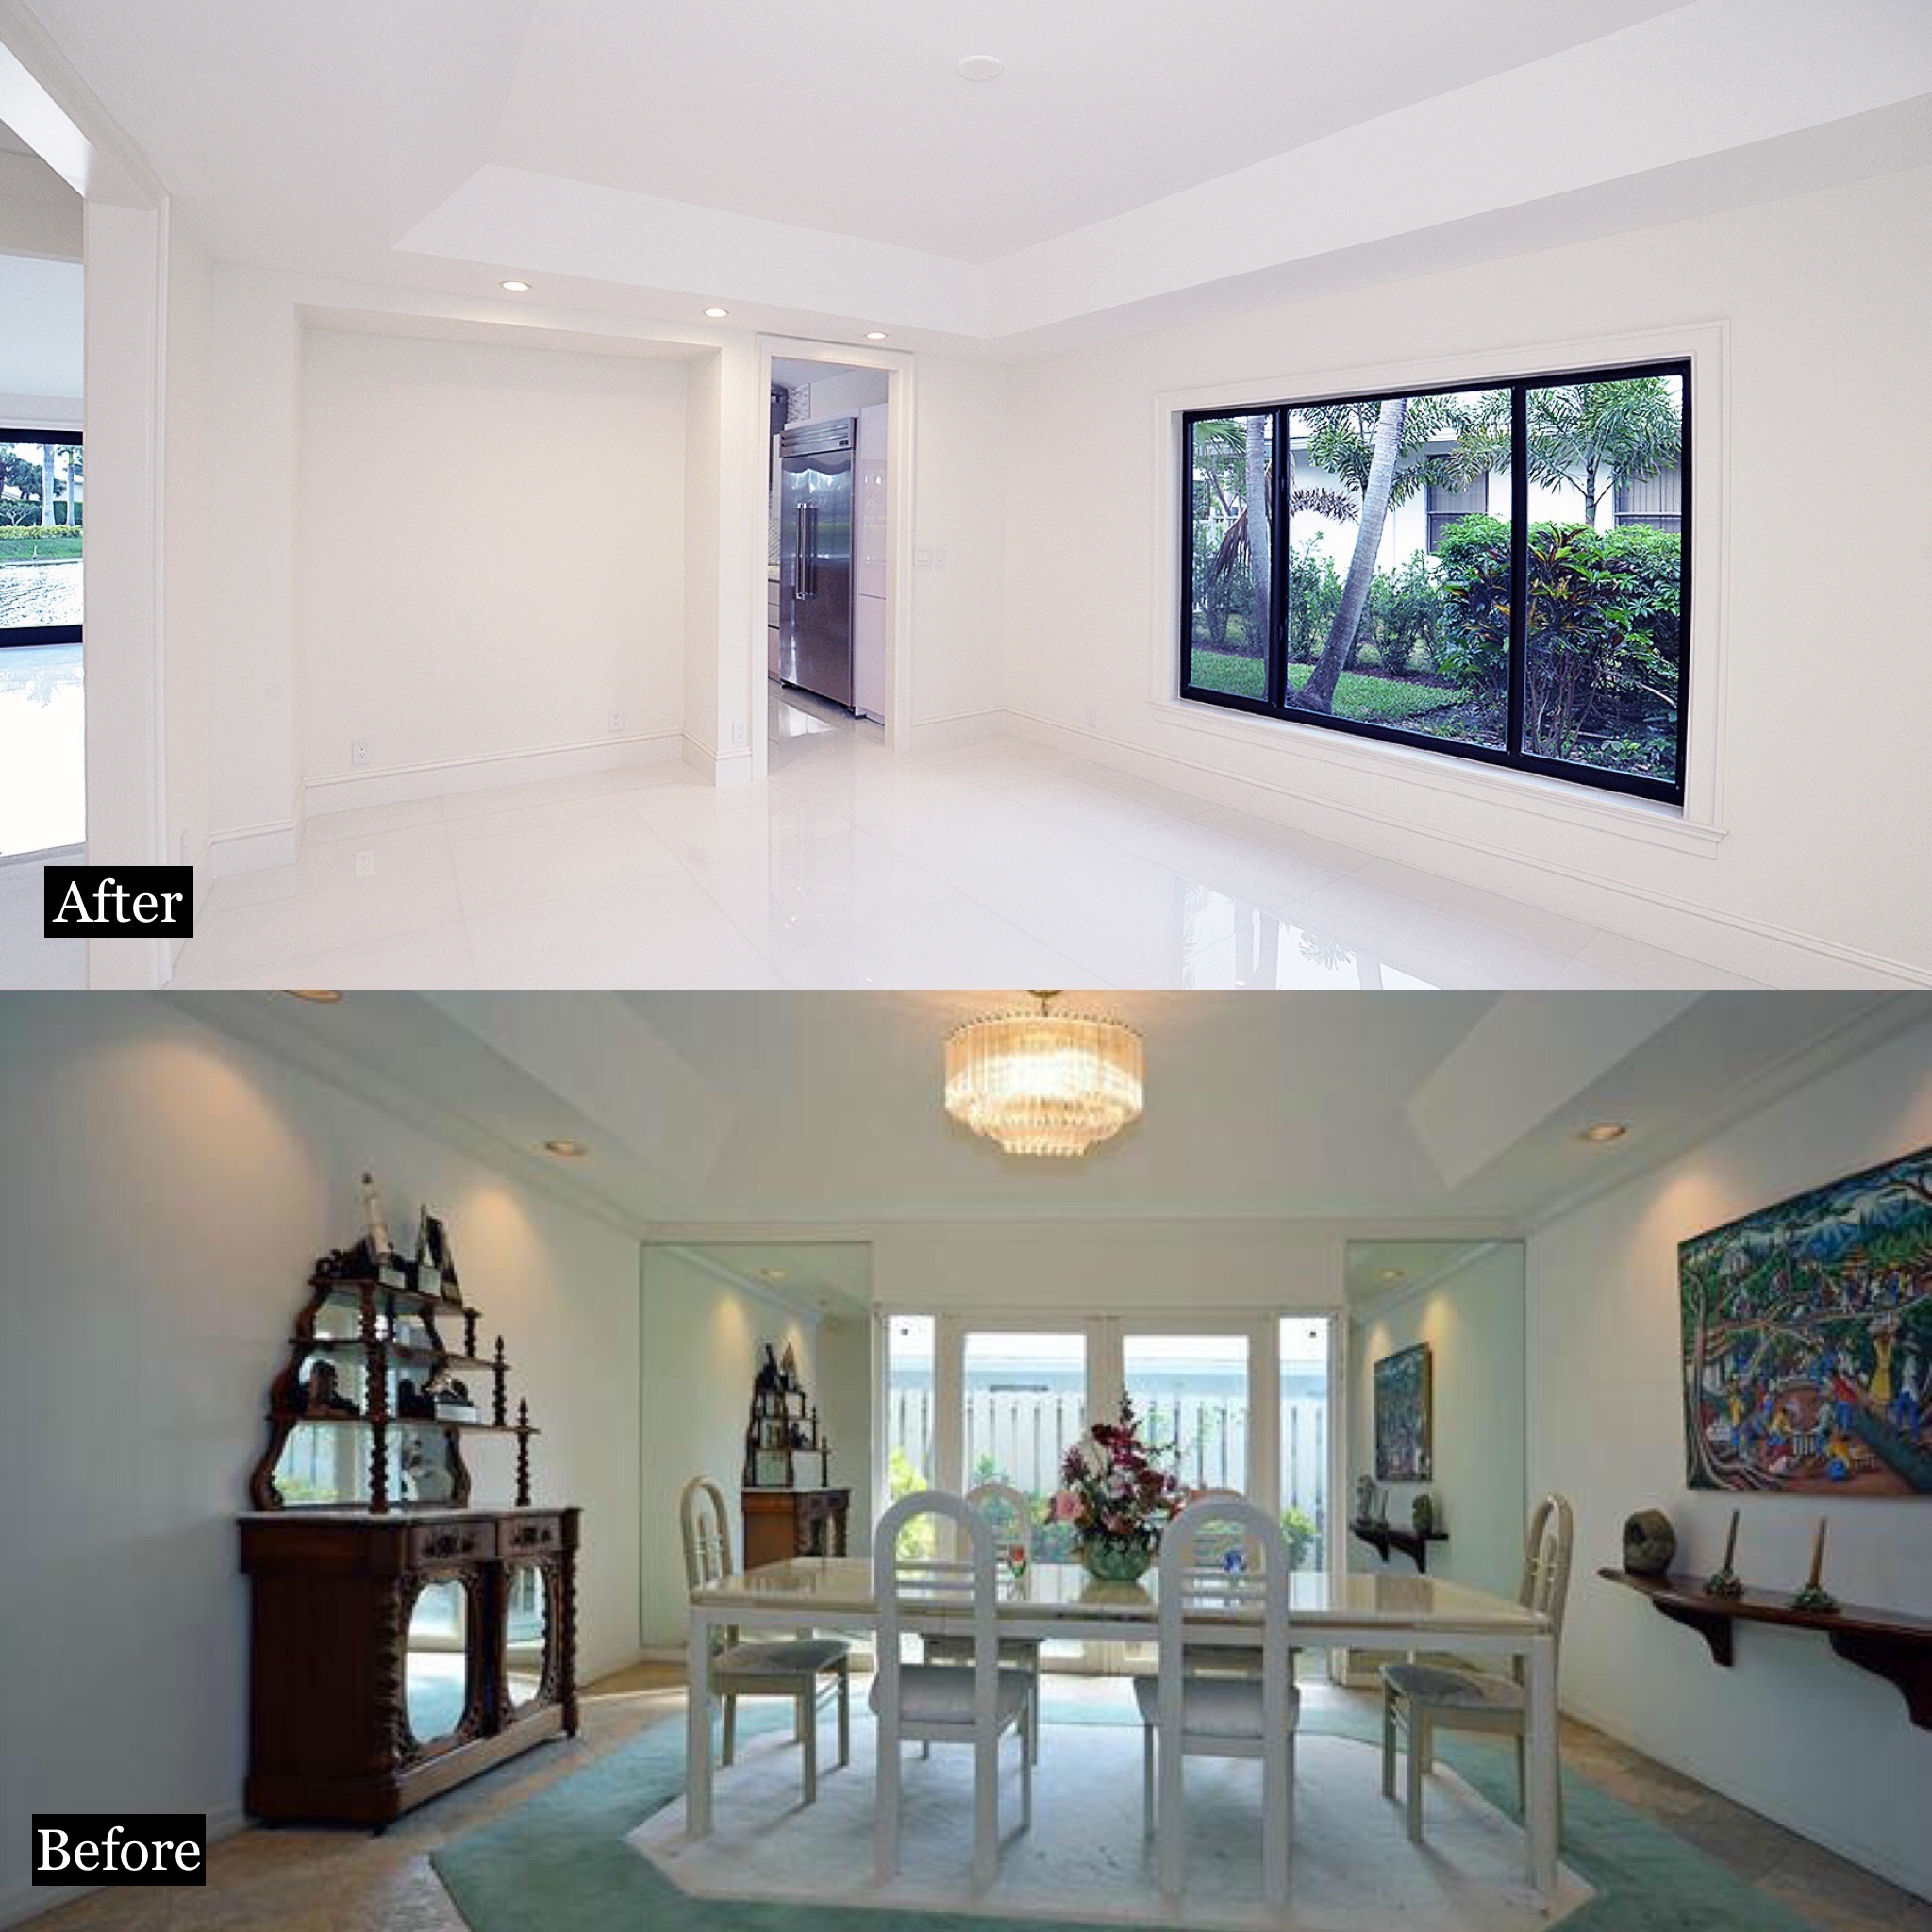 mag real estate & development transformation before after construction general contractor builder renovation south florida boca raton new custom luxury home for sale interior design st. andrews country club 7026 ayrshire lane 10.jpg